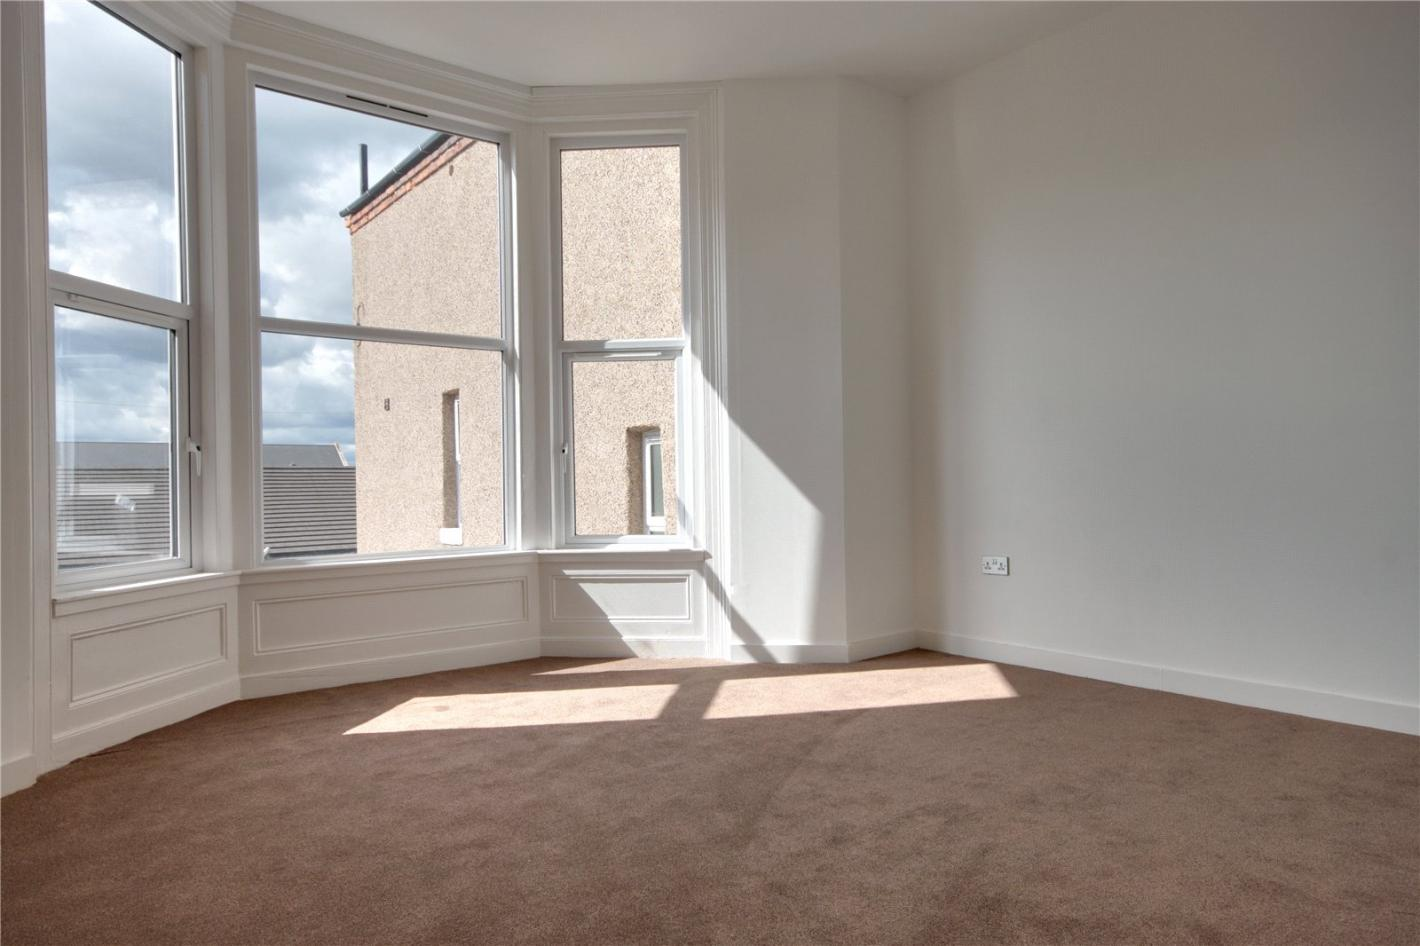 unfurnished, white walls, 3 floor to ceiling windows